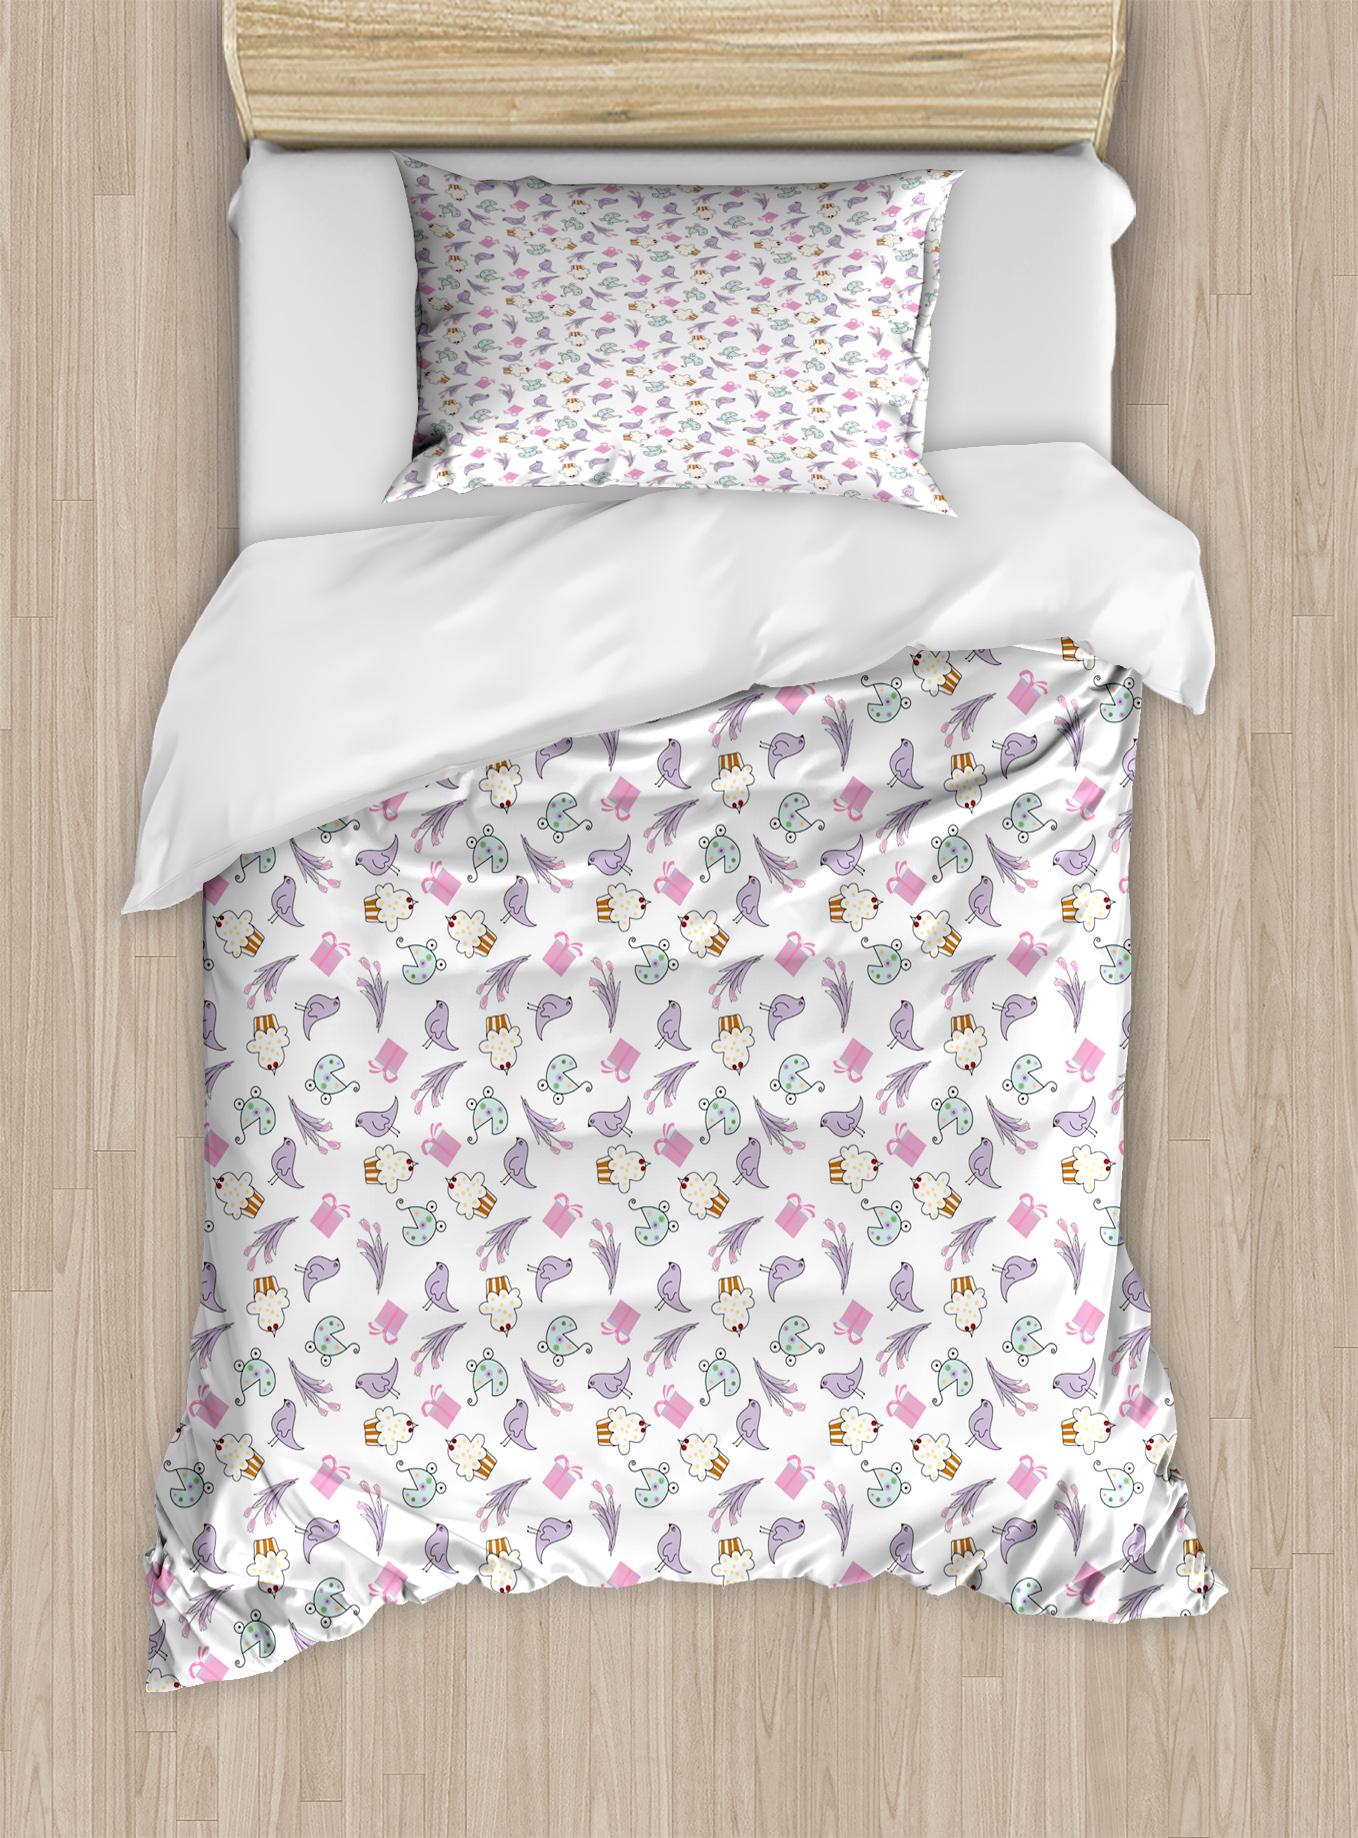 Birthday Twin Size Duvet Cover Set, Sketch Art Style Birds Cupcakes Baby Carriages and Tulip Flowers Newborn... by Kozmos